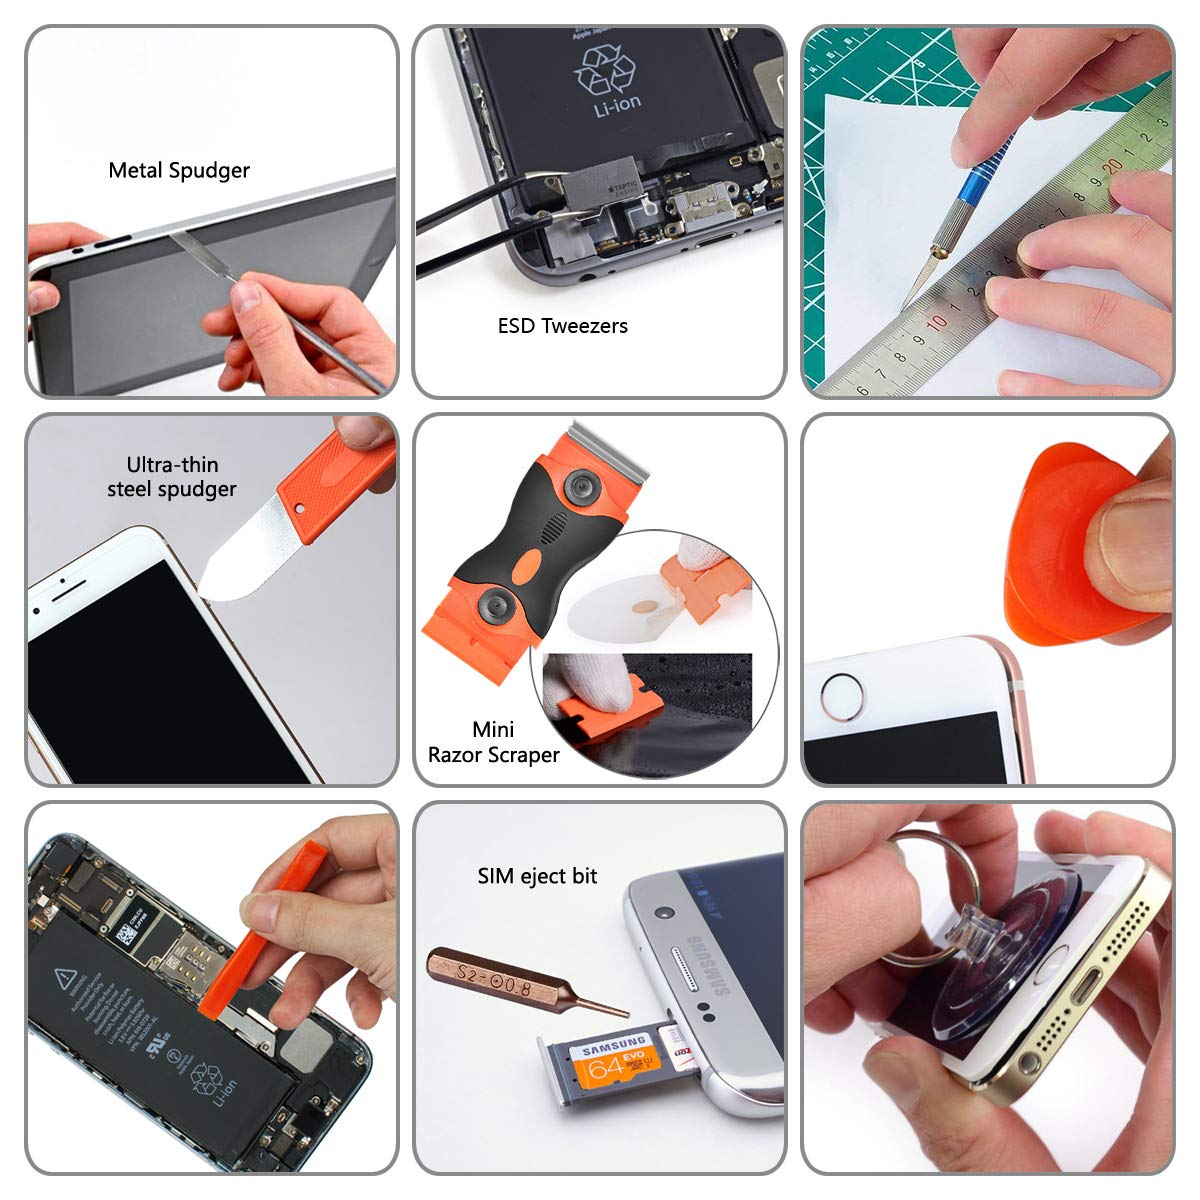 96 in 1 Screwdriver Set Precision,Full Electronic Repair Tool Kit Professional,S2 Steel for Fix iPhone/Computer/Mobile Phone/iPad/MacBook/Laptop/Watch/Game Console DIY Pry Open Replace Screen by GANGZHIBAO (Image #6)